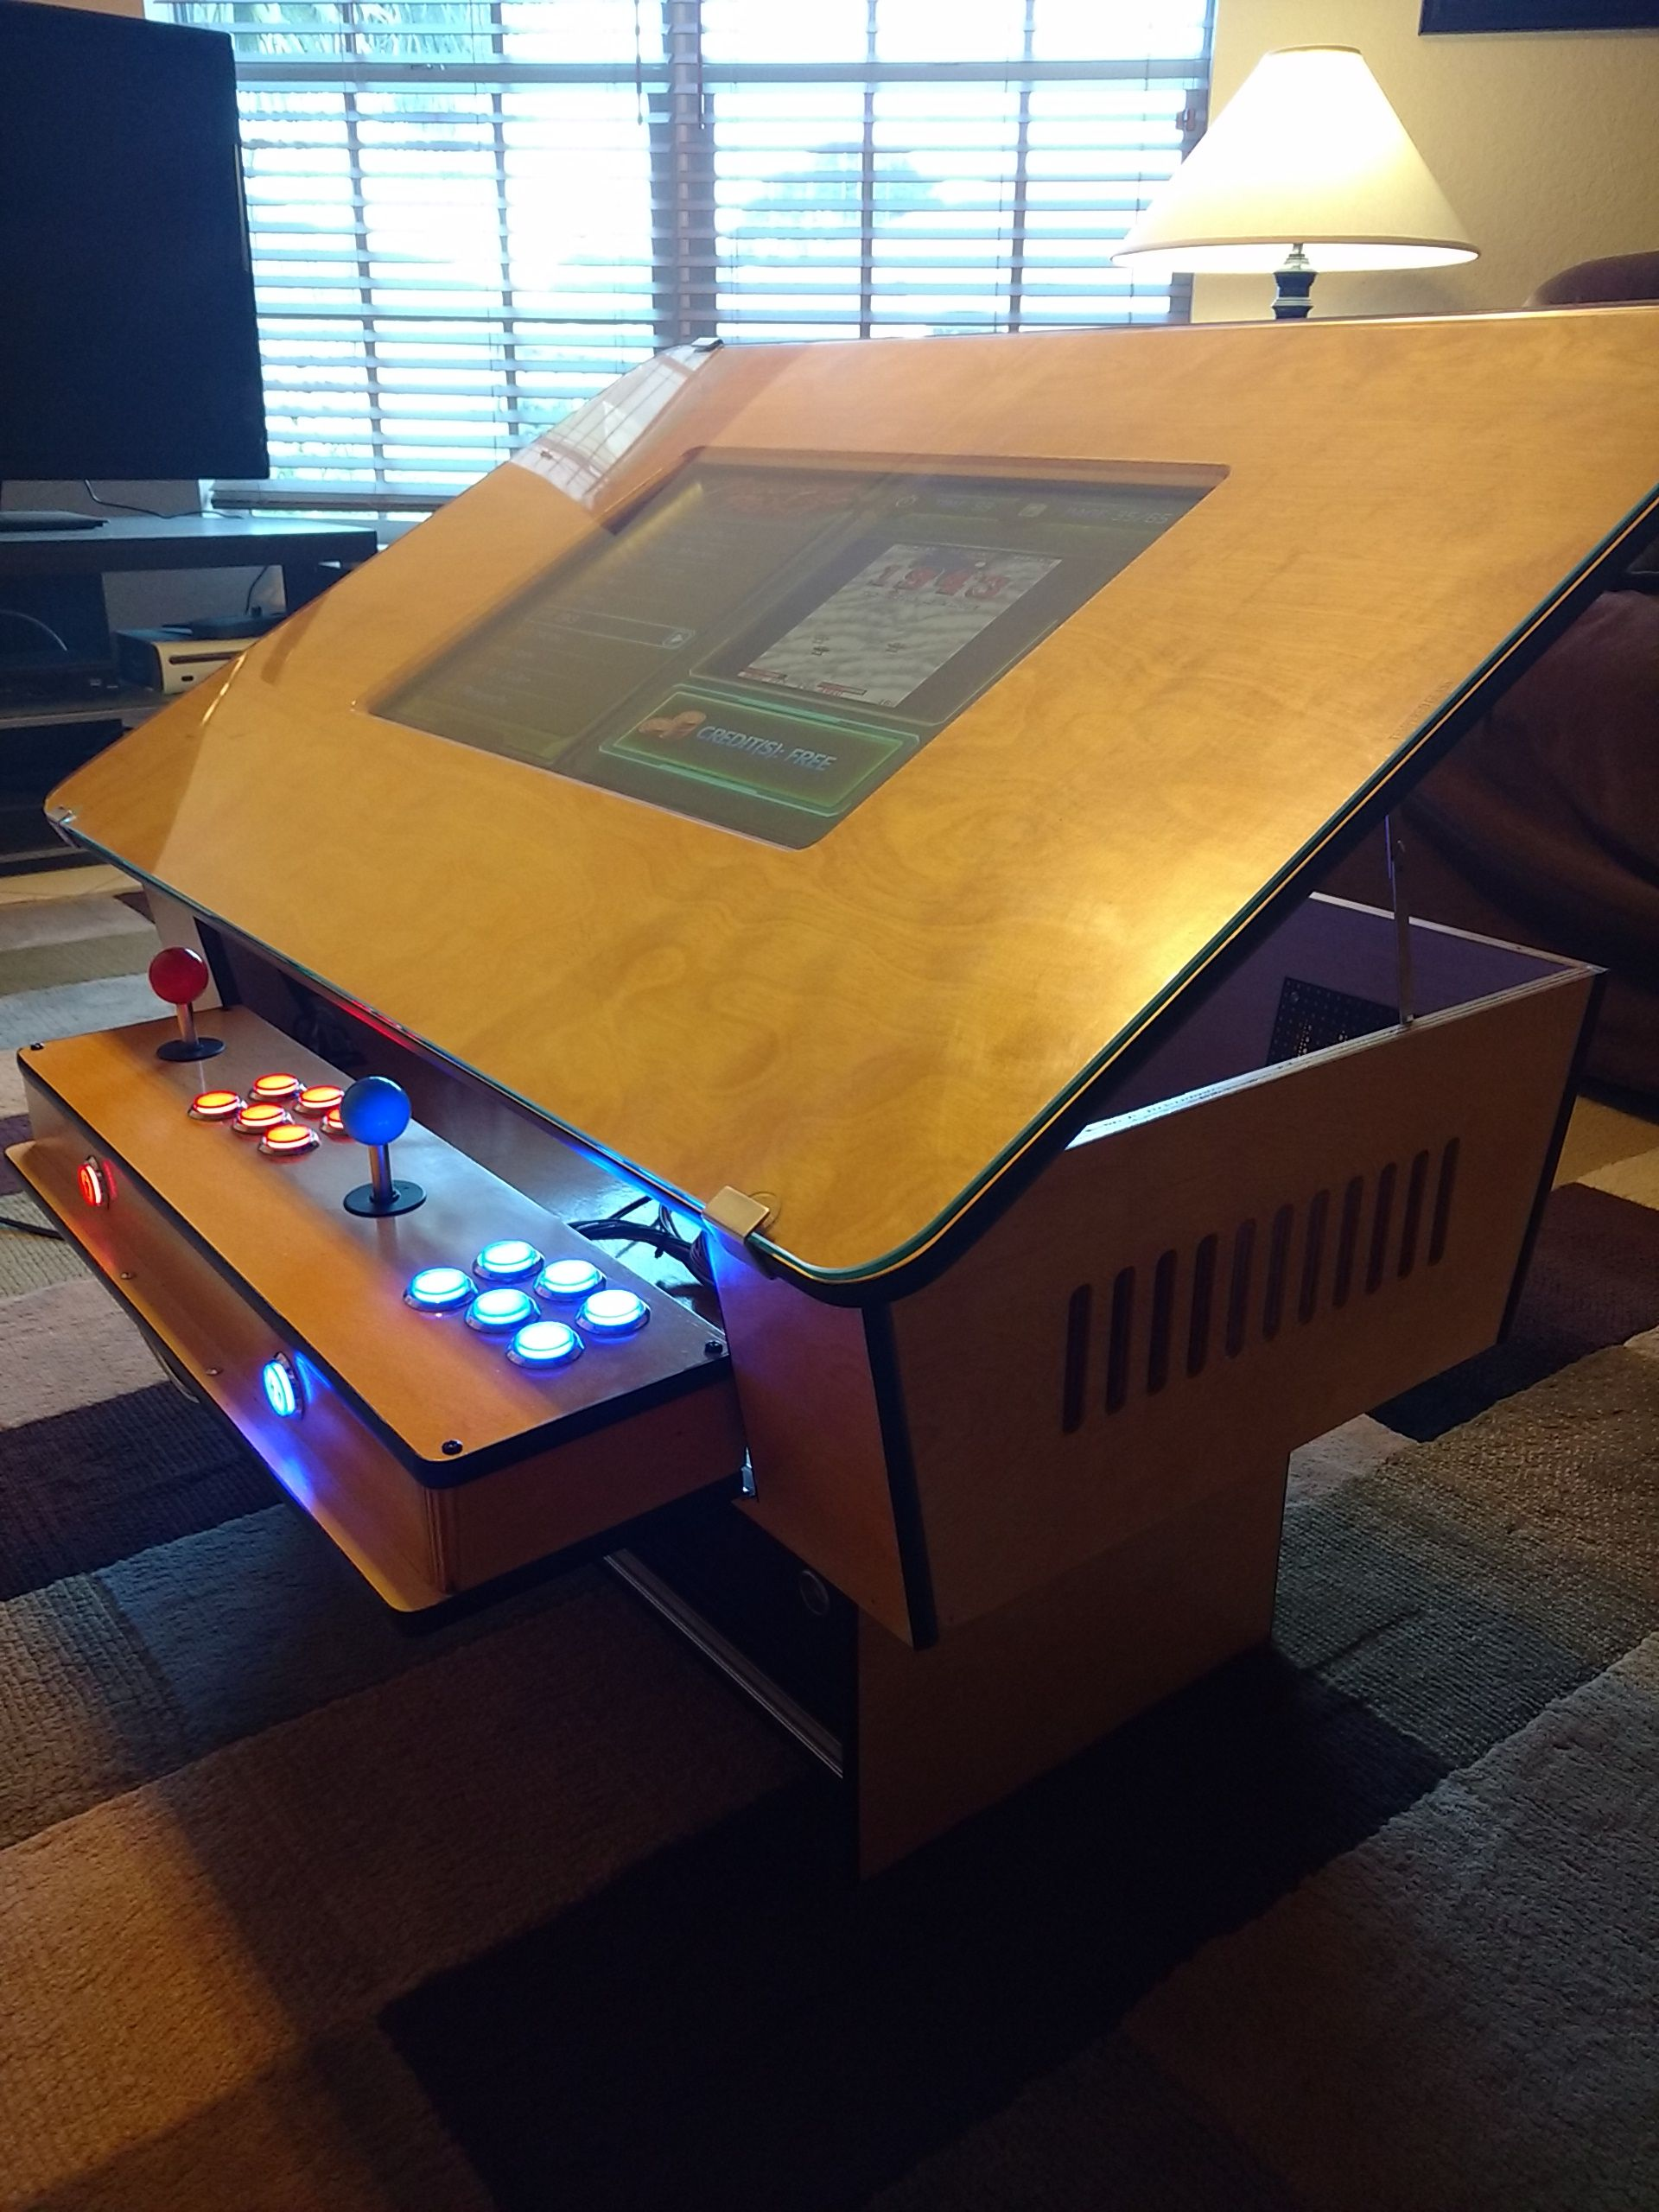 Retro arcade game coffee table made by one of our members Great